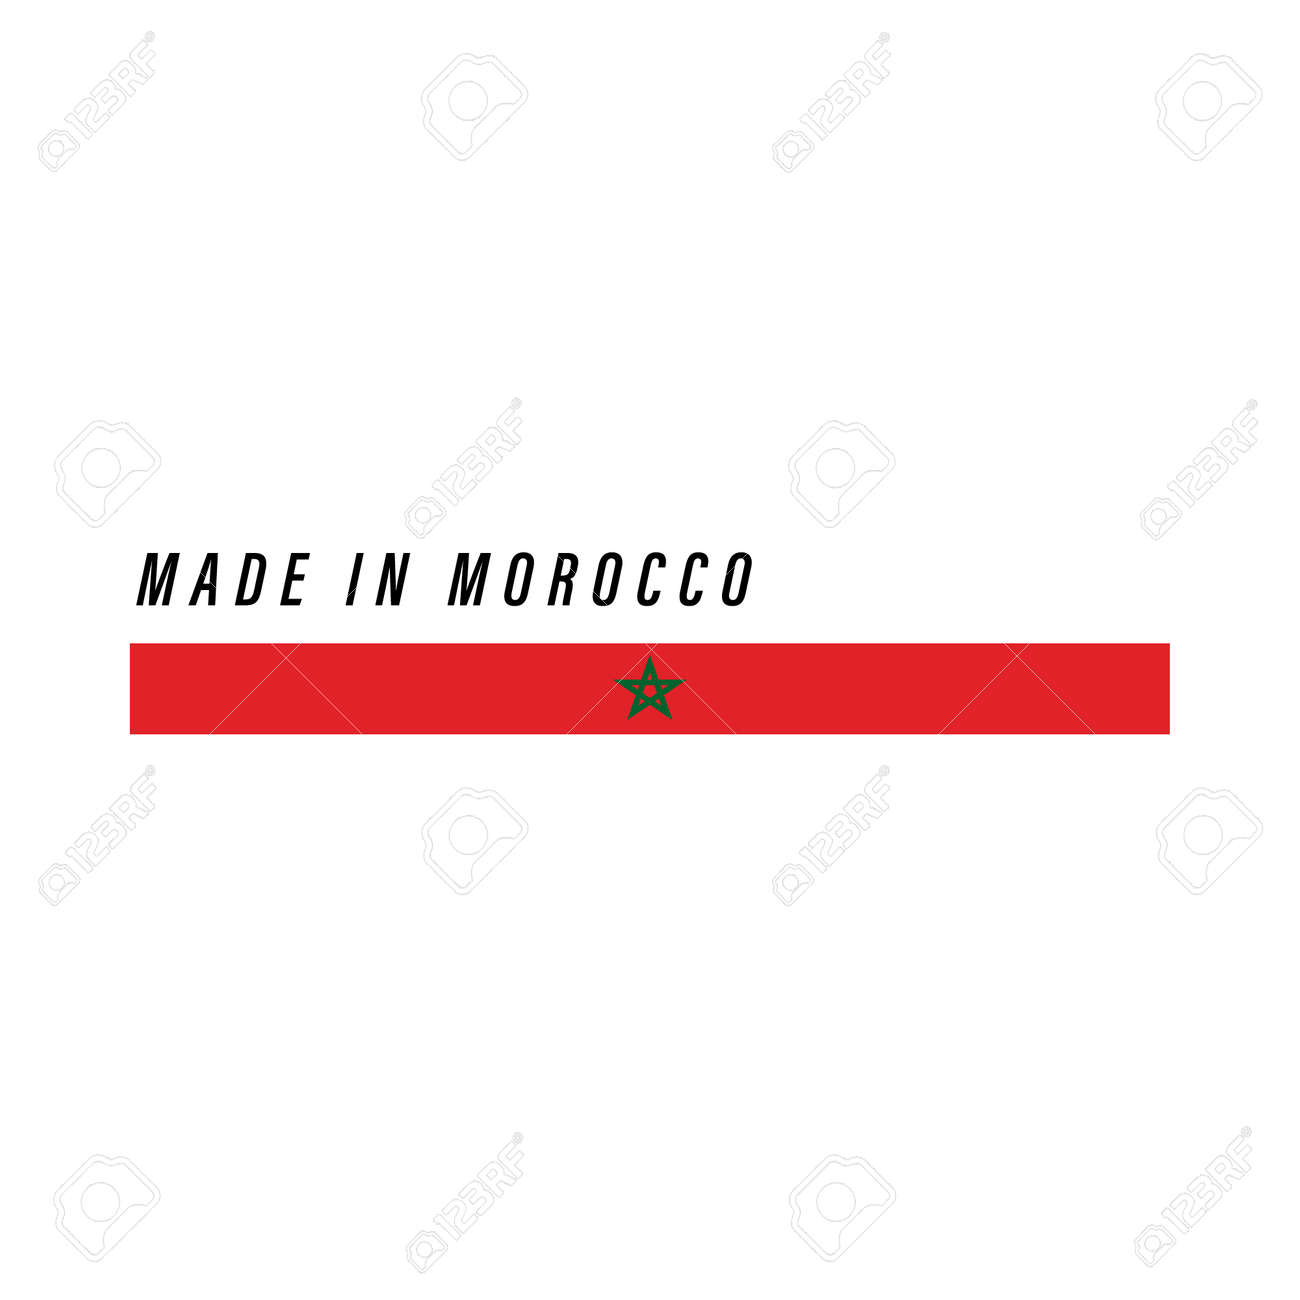 Made in Morocco, badge or label with flag isolated on white background - 168929102